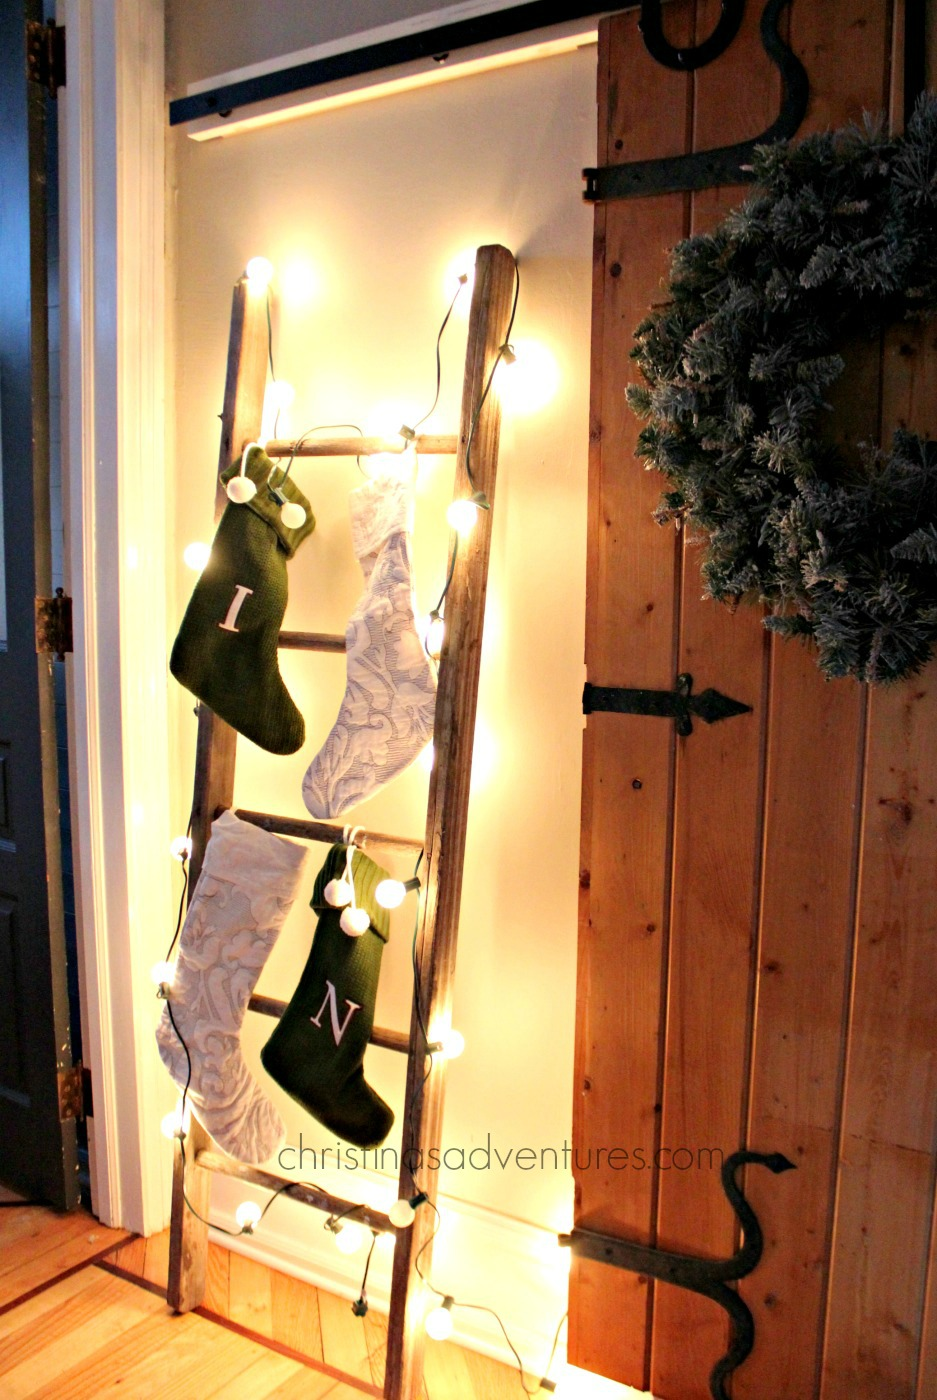 How to hang stockings on a ladder